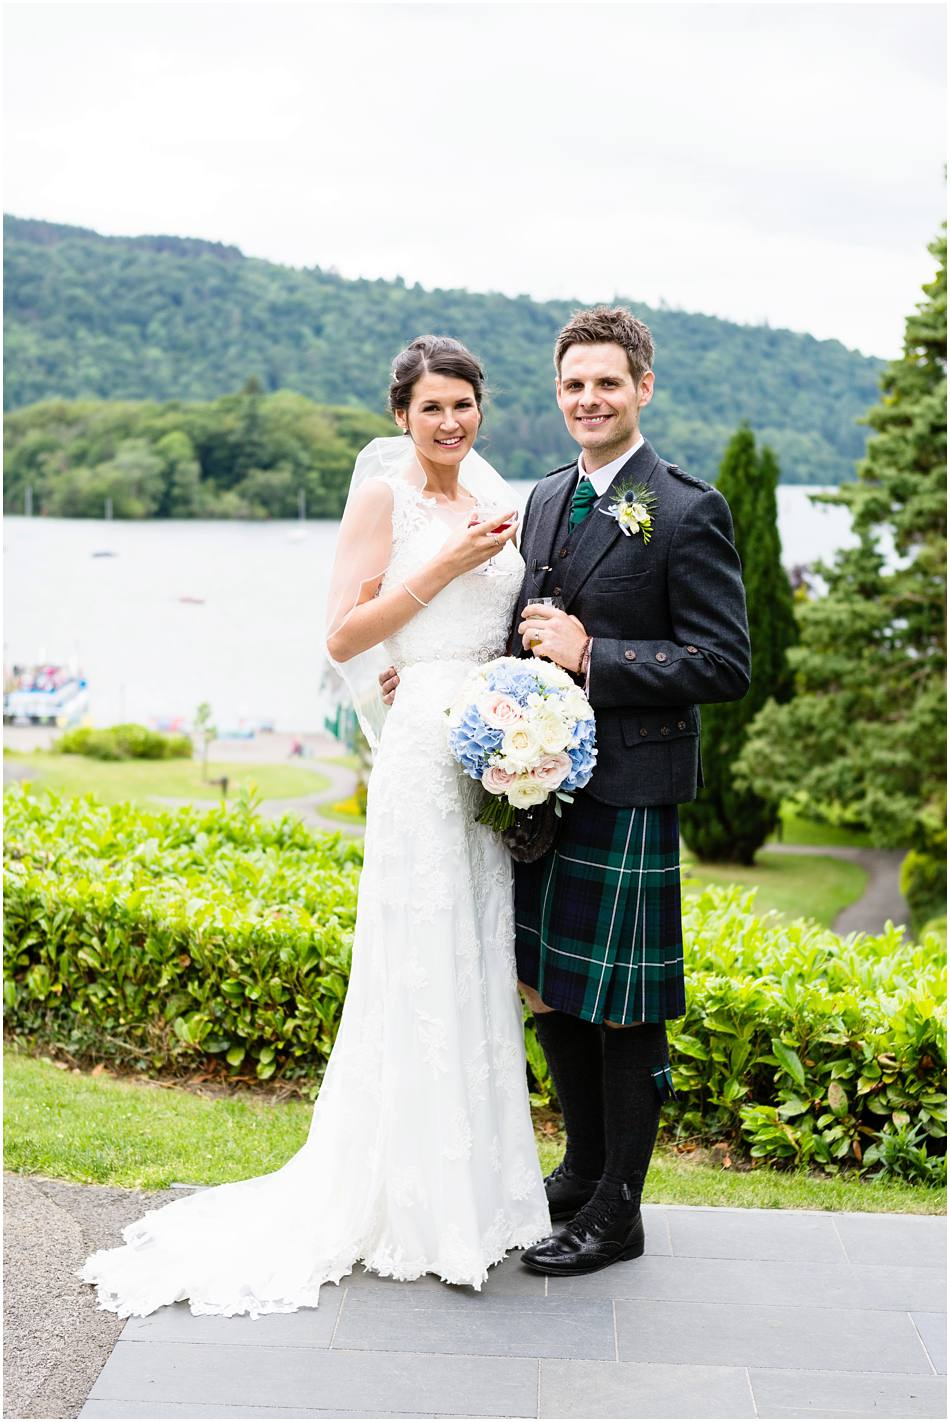 wedding photography The Belsfield Hotel, Bowness on Windermere